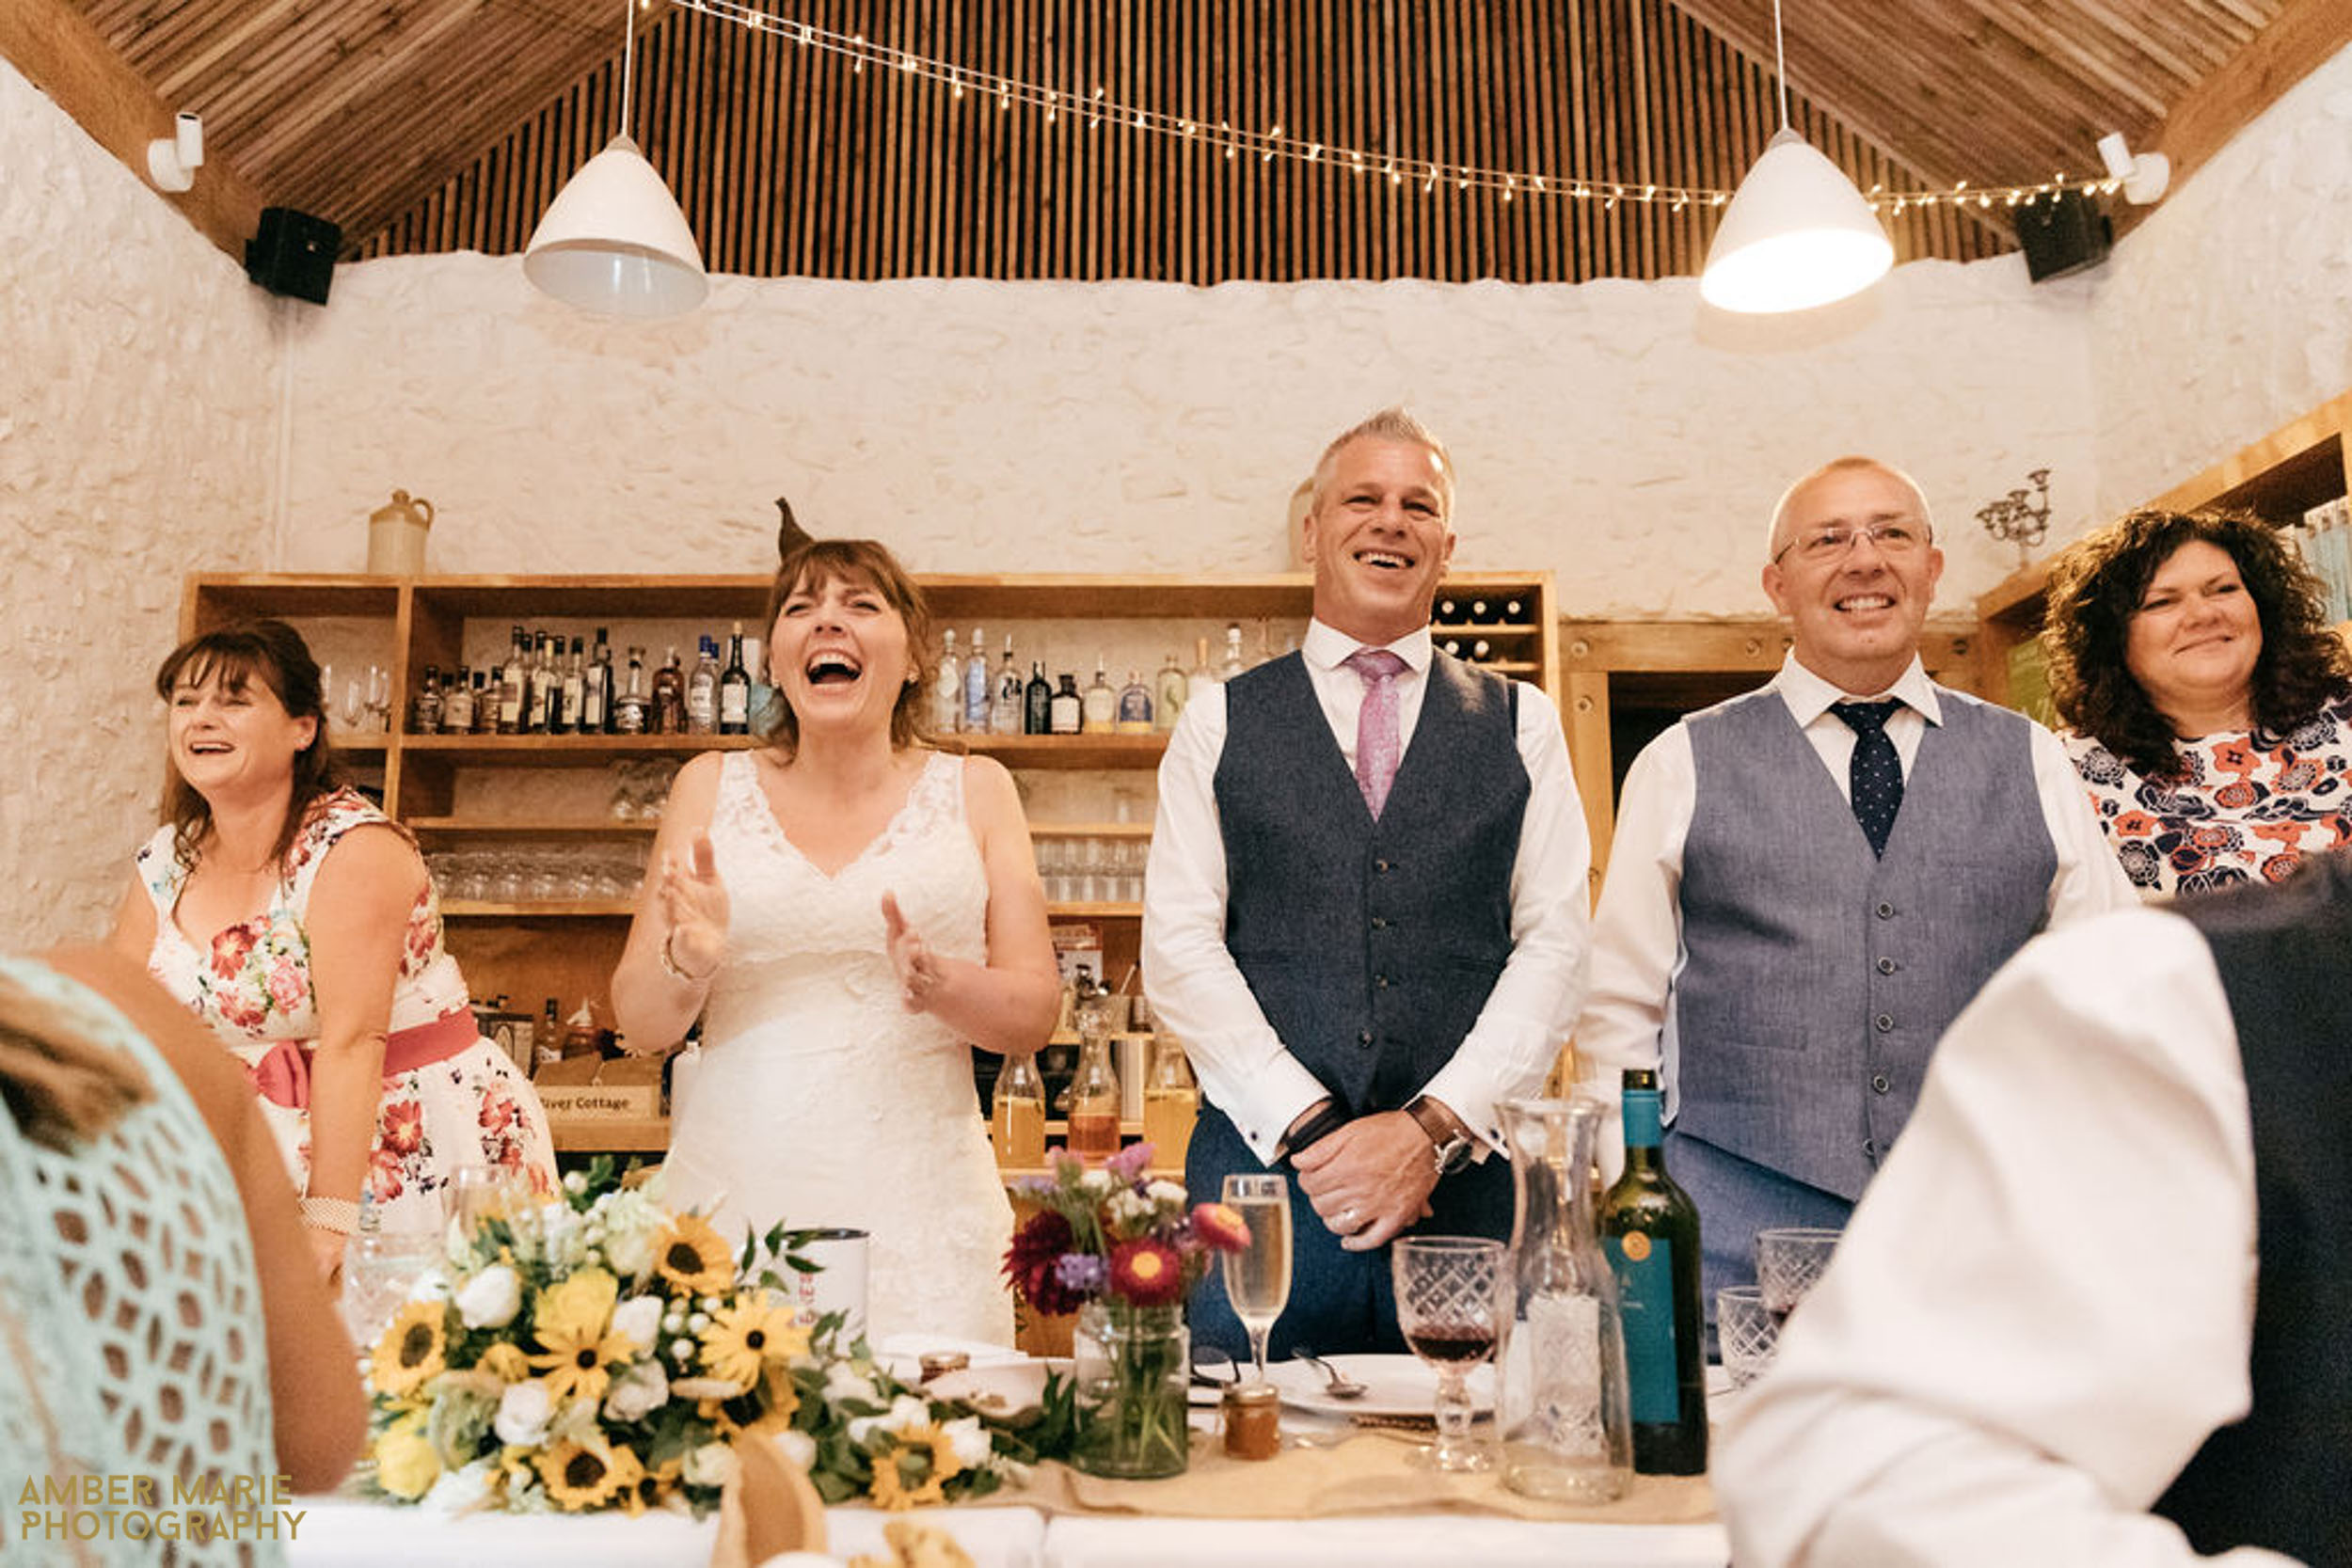 Summer wedding photography at river cottage